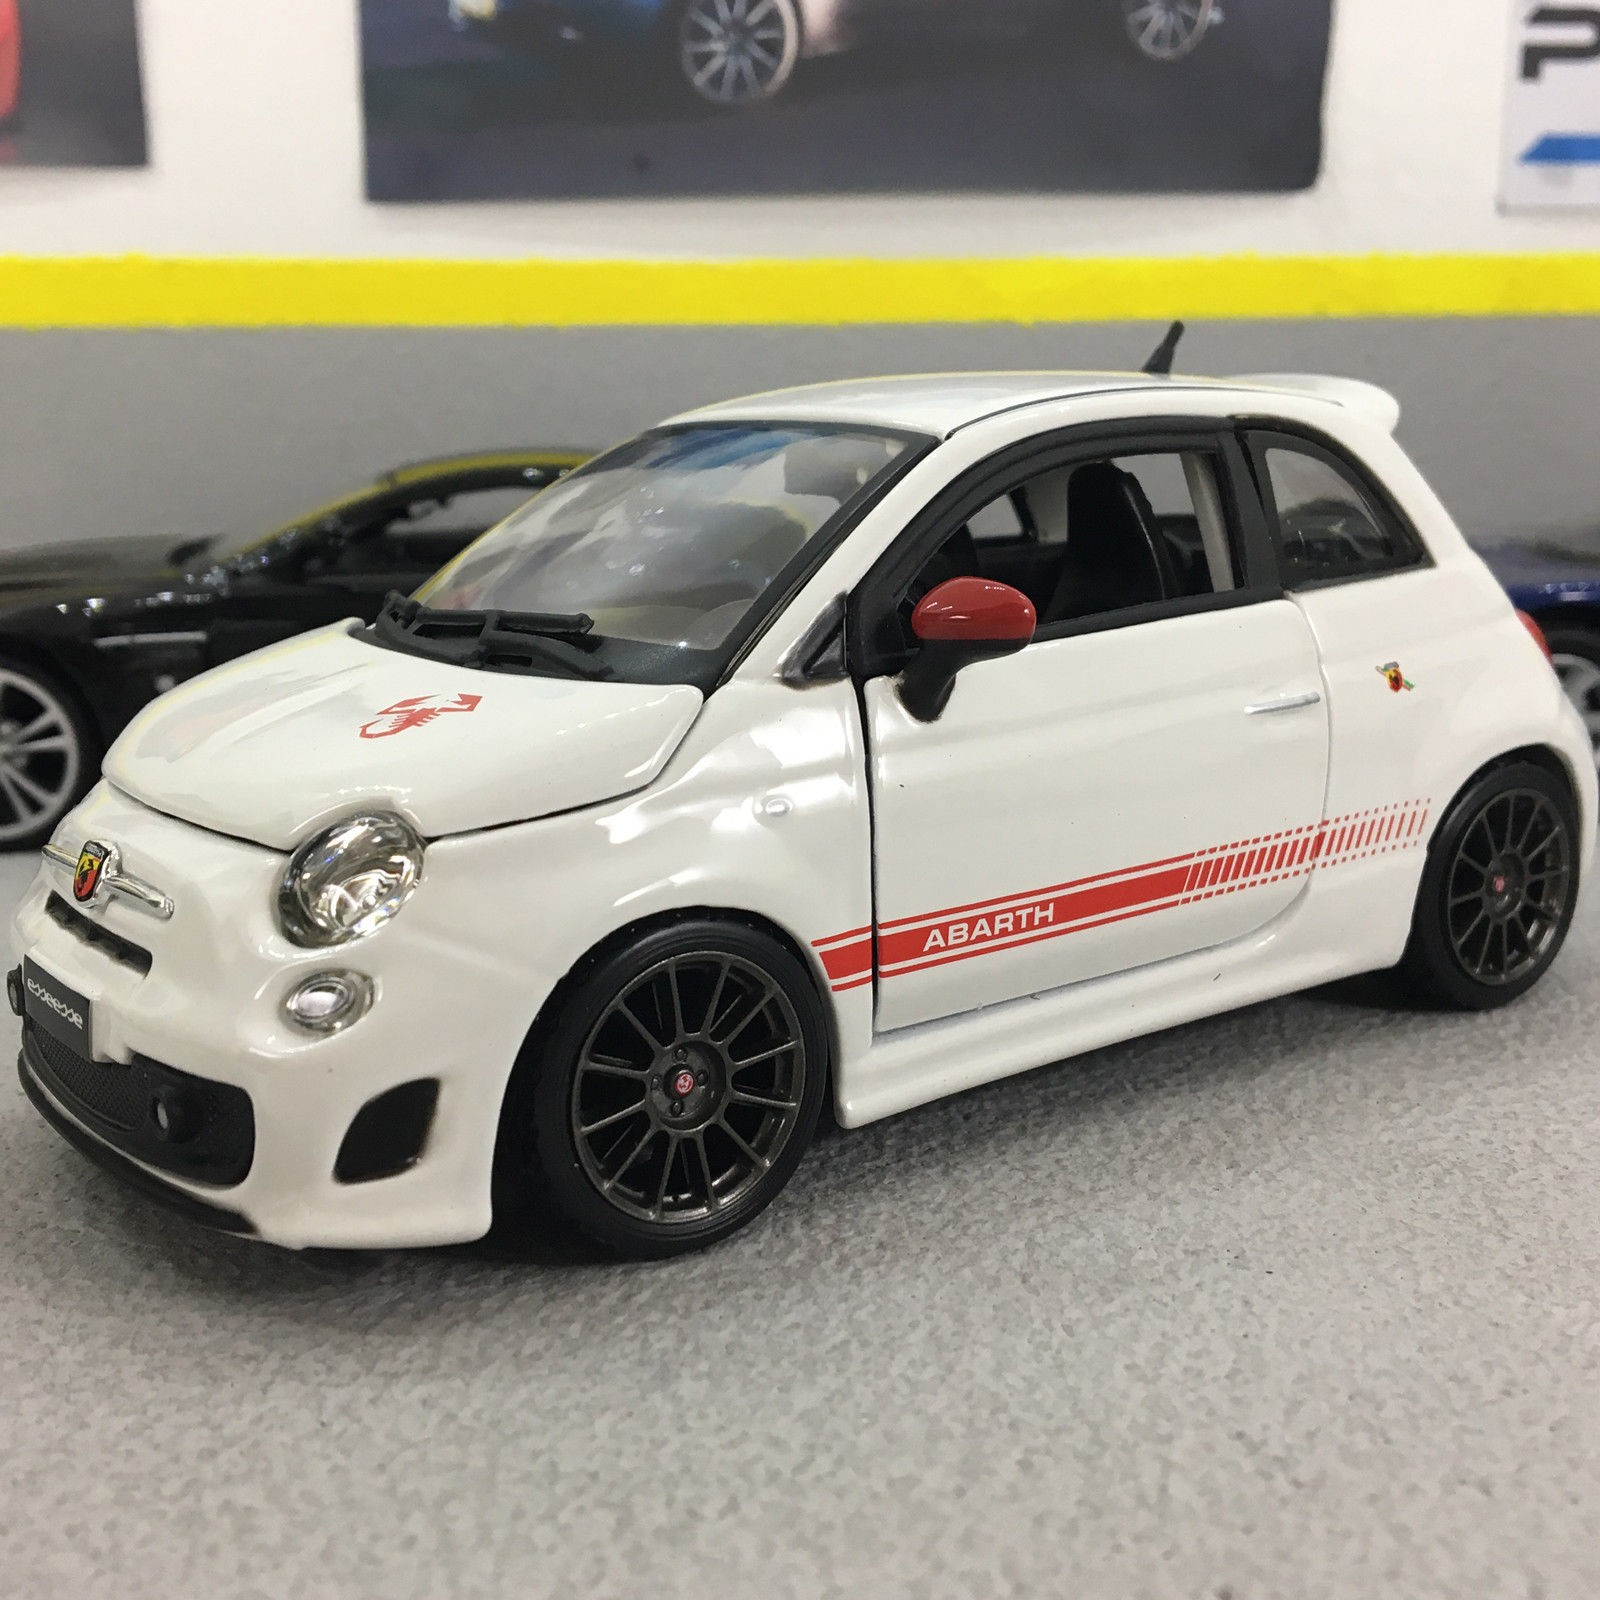 exclusive special i cast die customers scale ebay fiat itm abarth offer arbath car pitwalk white esseesse model to